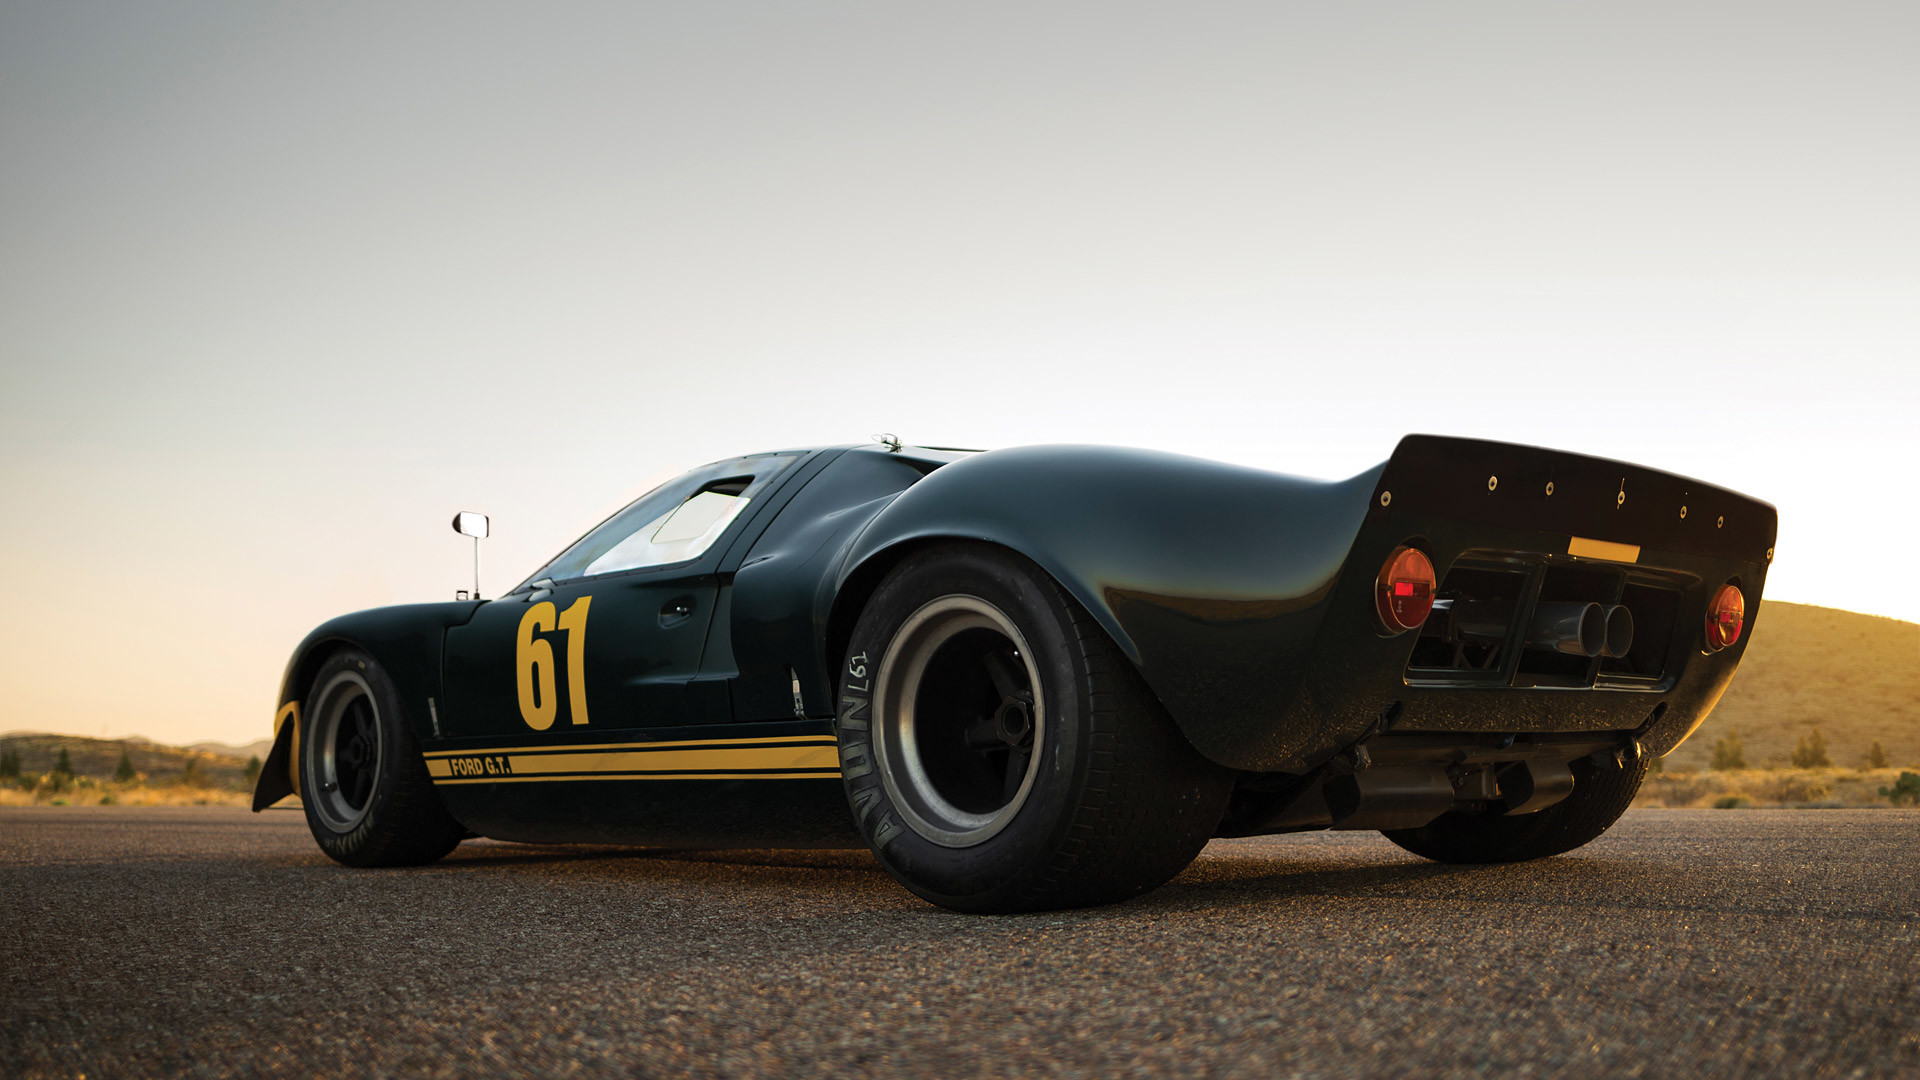 Res: 1920x1080, 1966 Ford GT40 Le Mans picture.